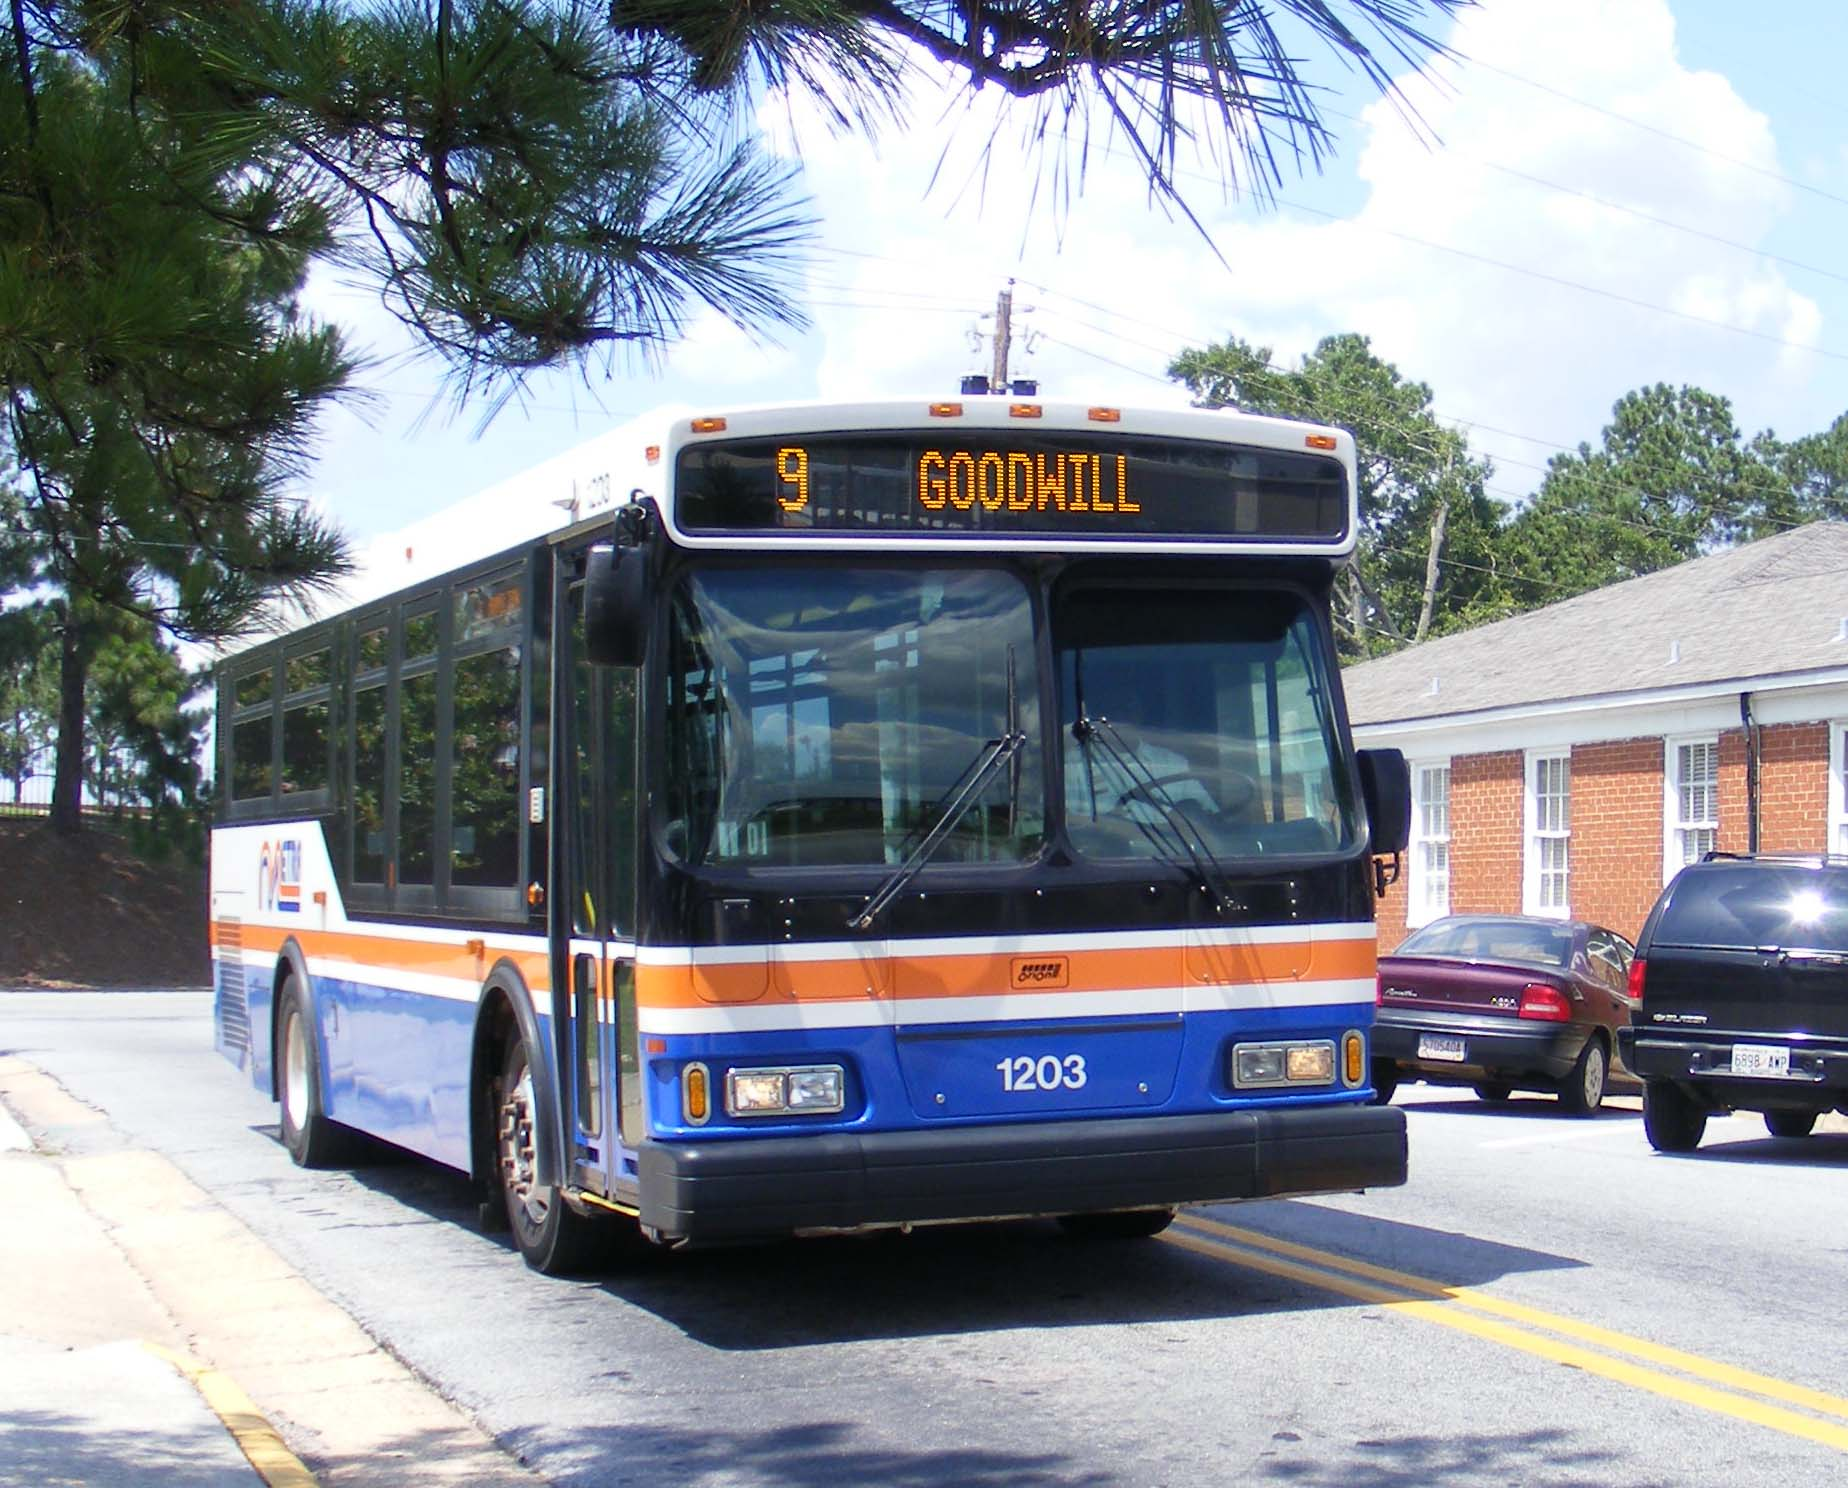 Ground hound bus schedule : Best Discounts